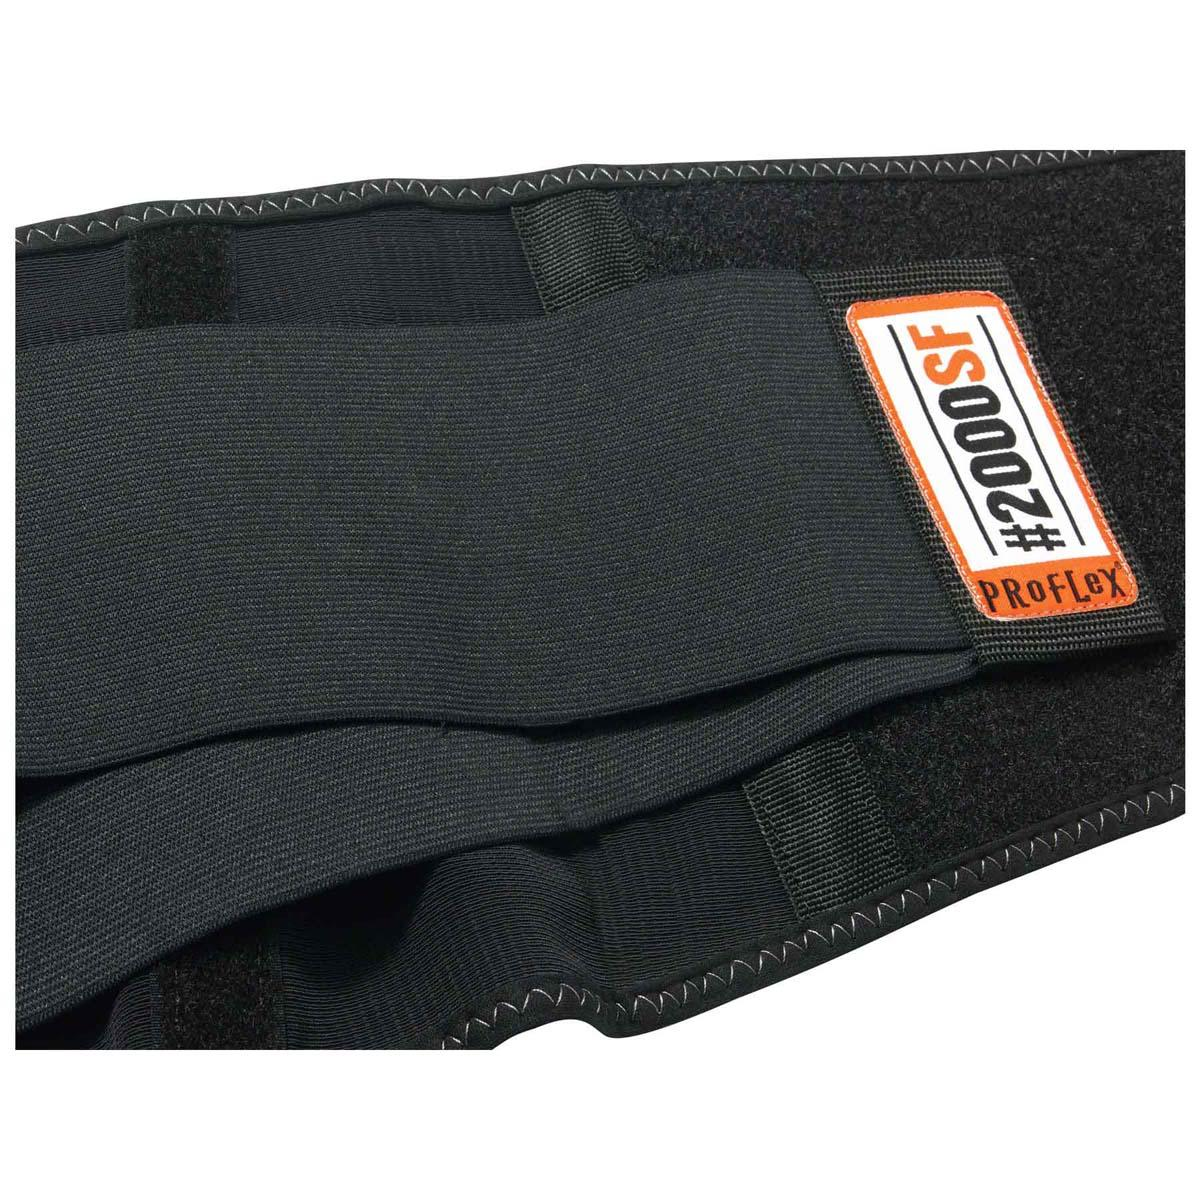 2000SF M Black High-Performance Back Support